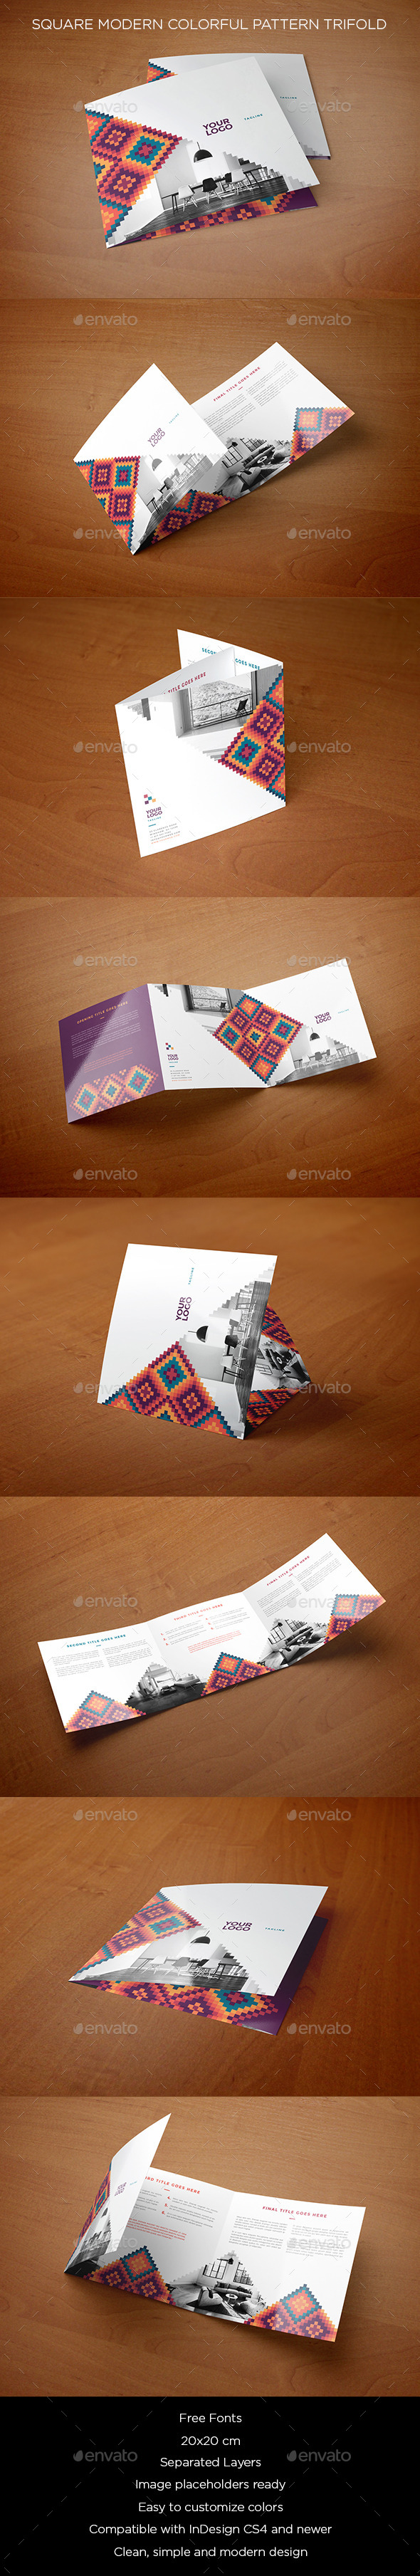 Square Modern Colorful Pattern Trifold - Brochures Print Templates